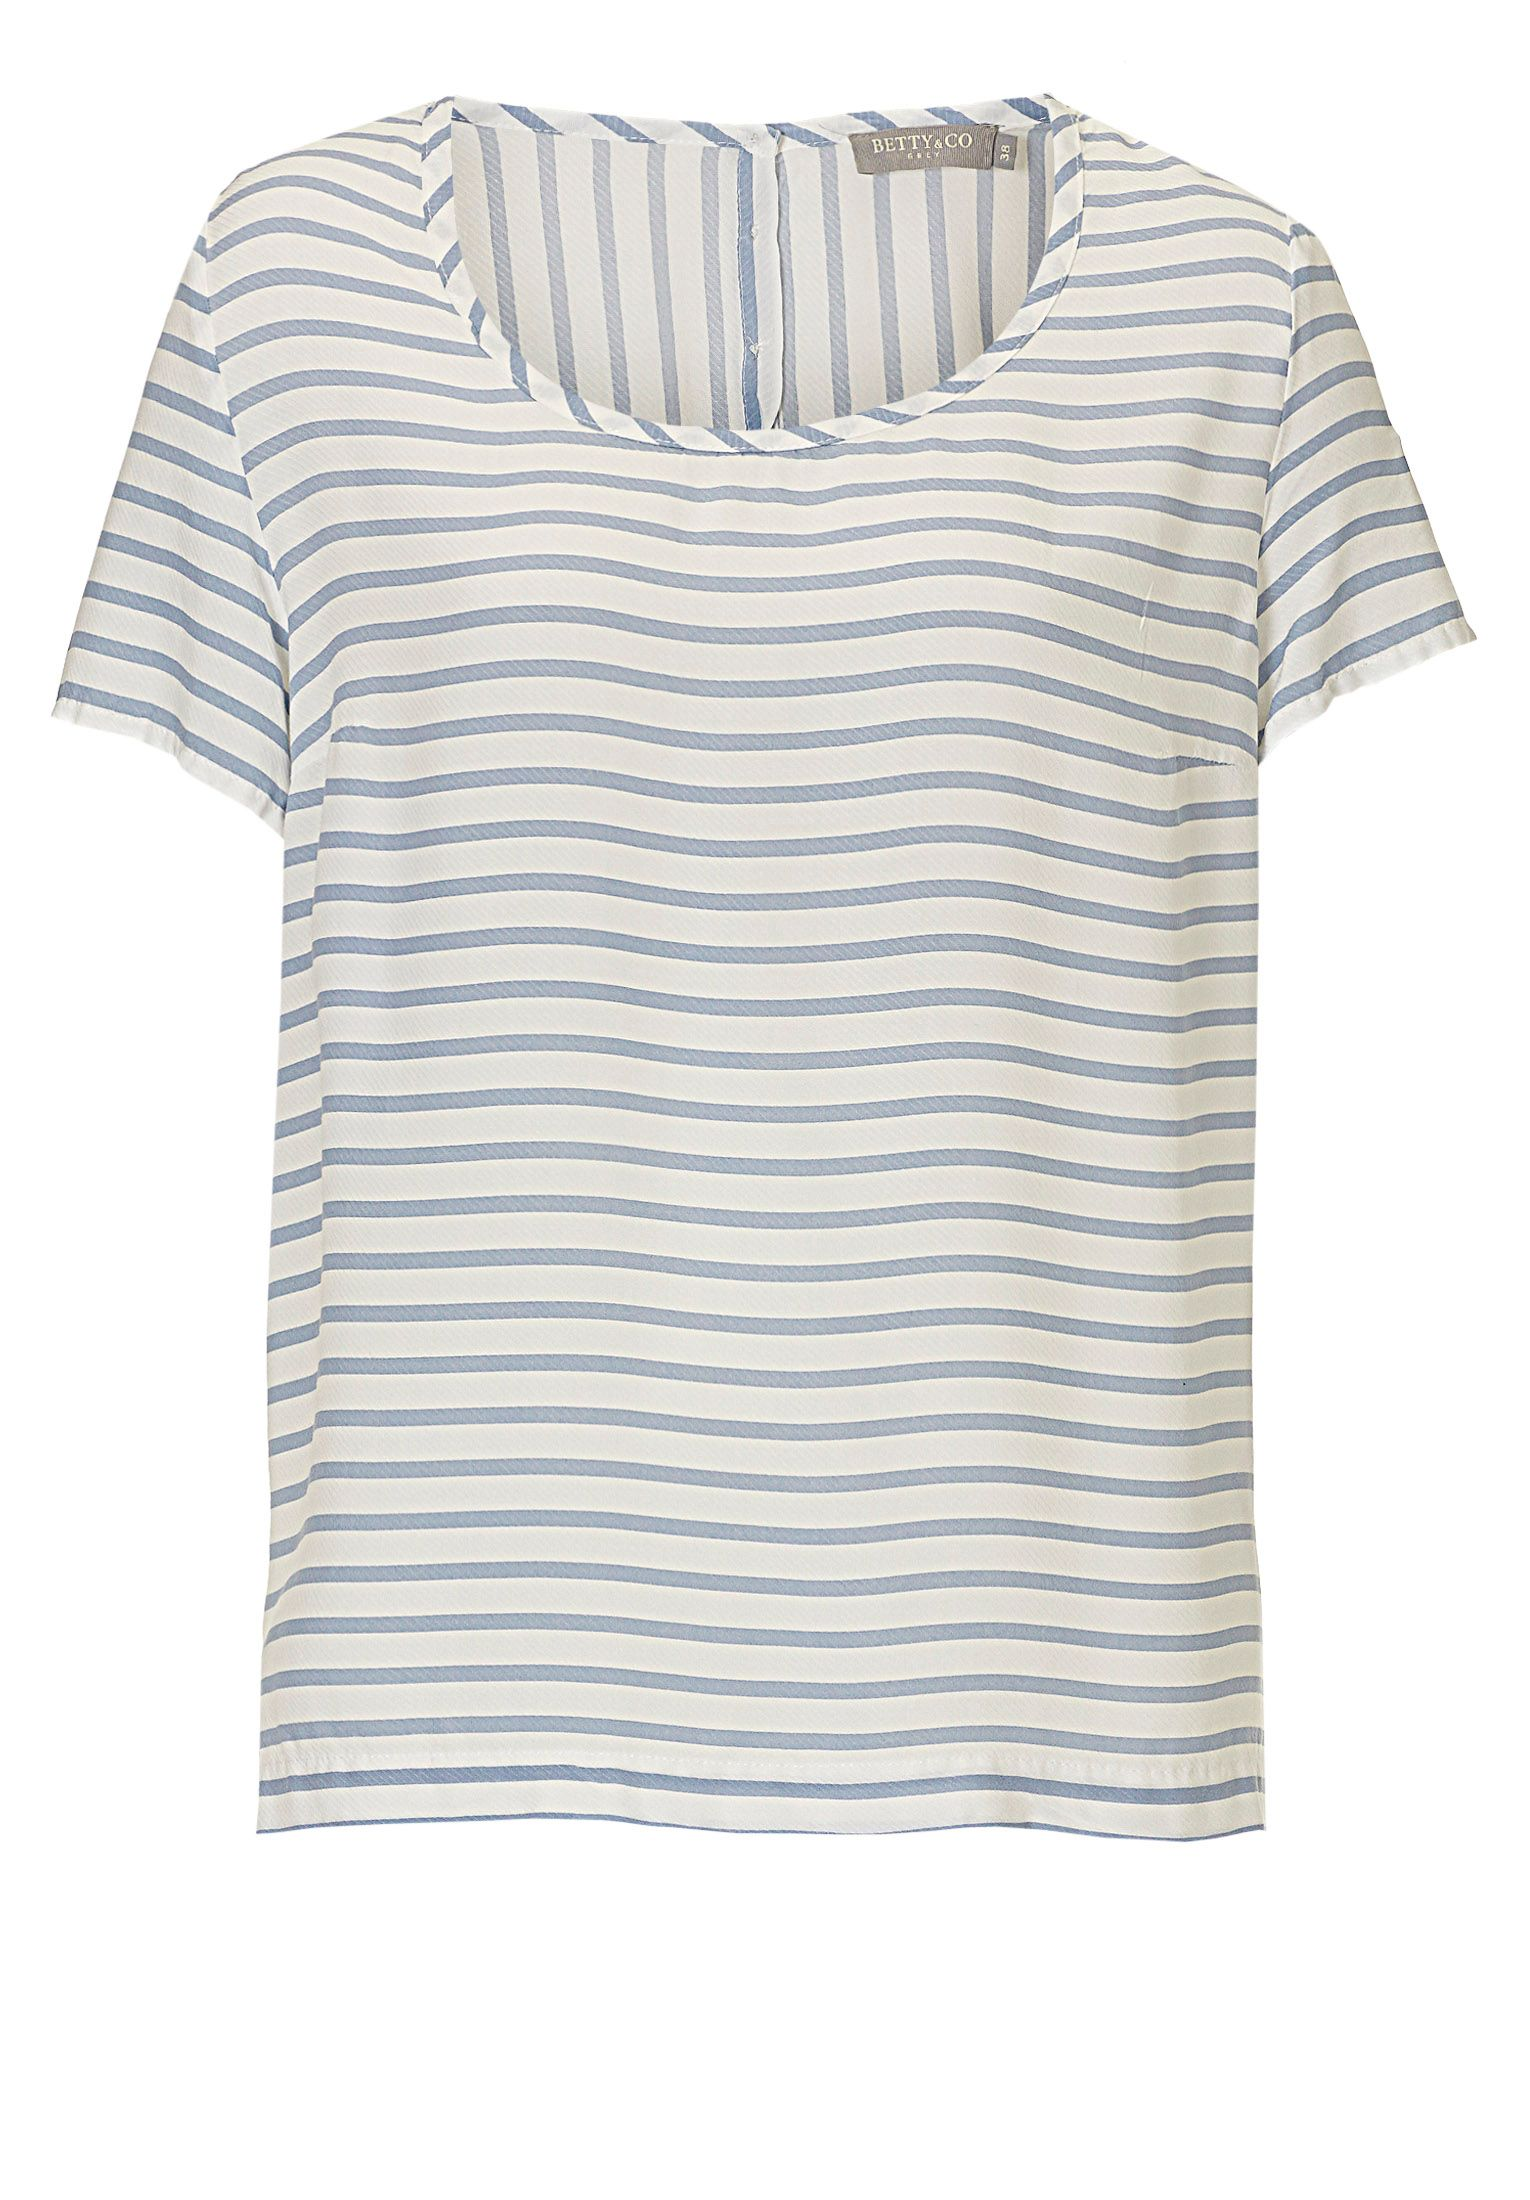 Betty & Co. Short sleeved striped top, Multi-Coloured